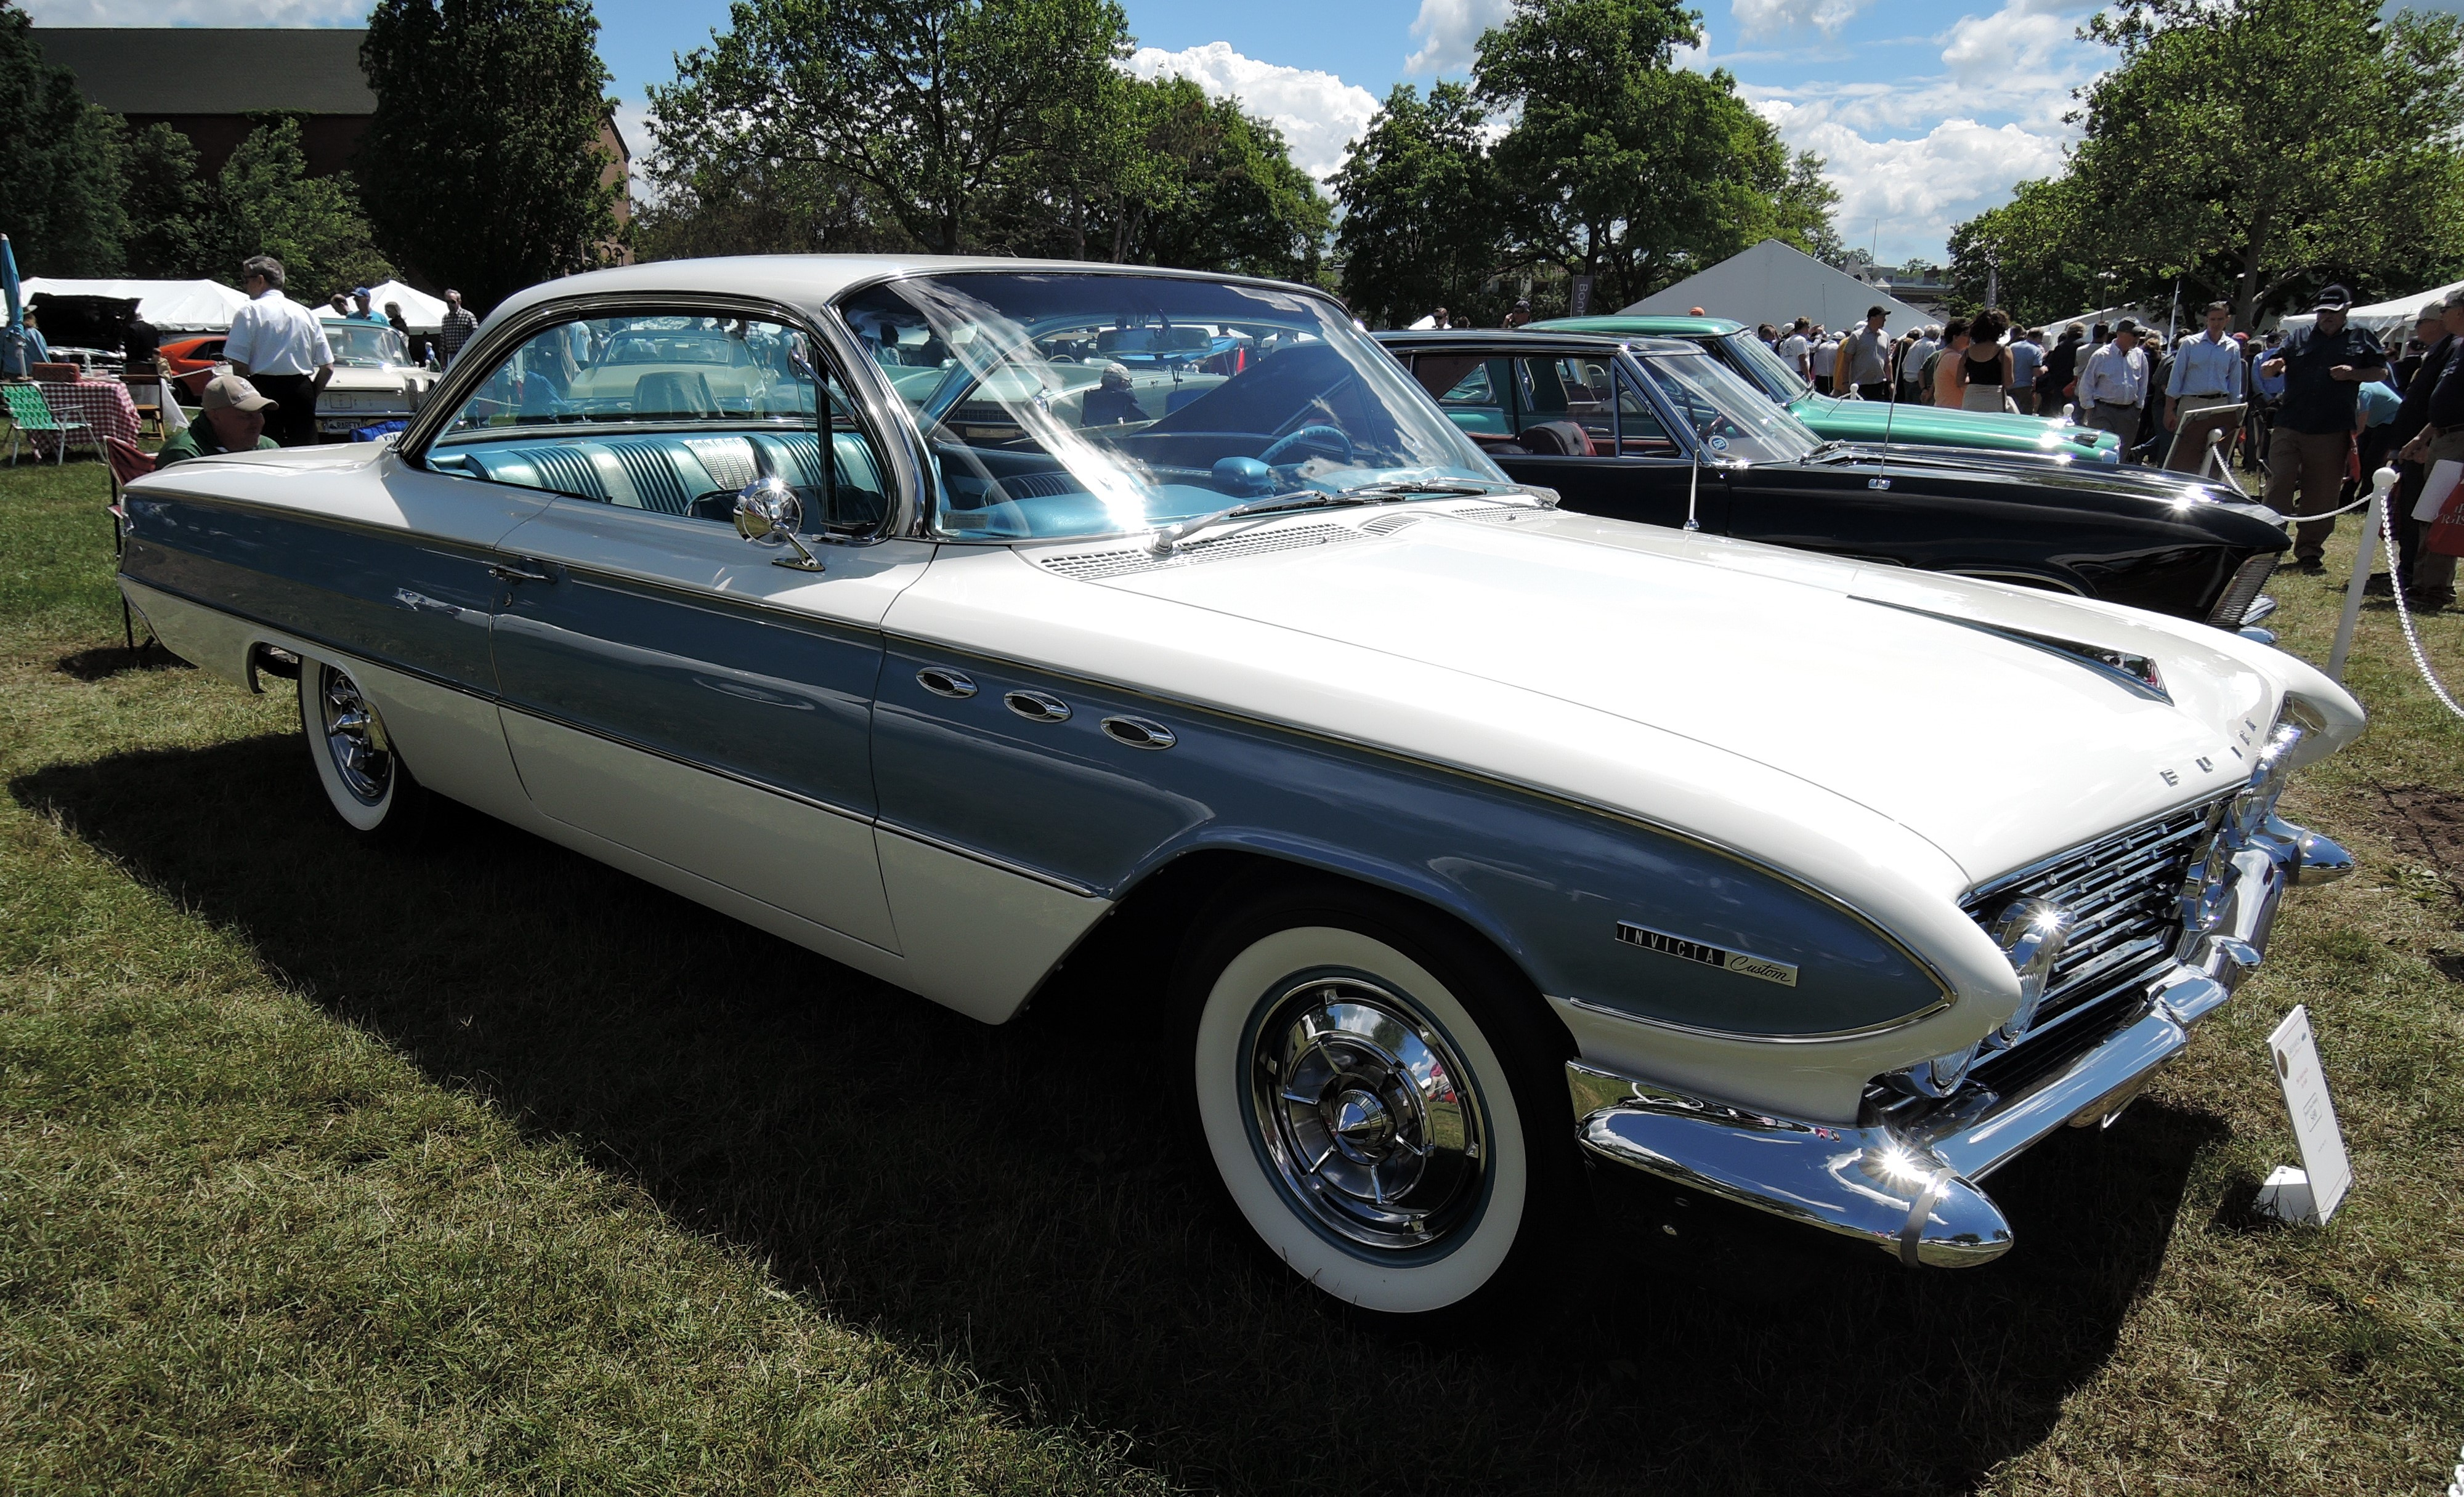 white/blue 1961 Buick Invicta - Greenwich Concours d'Elegance 2017